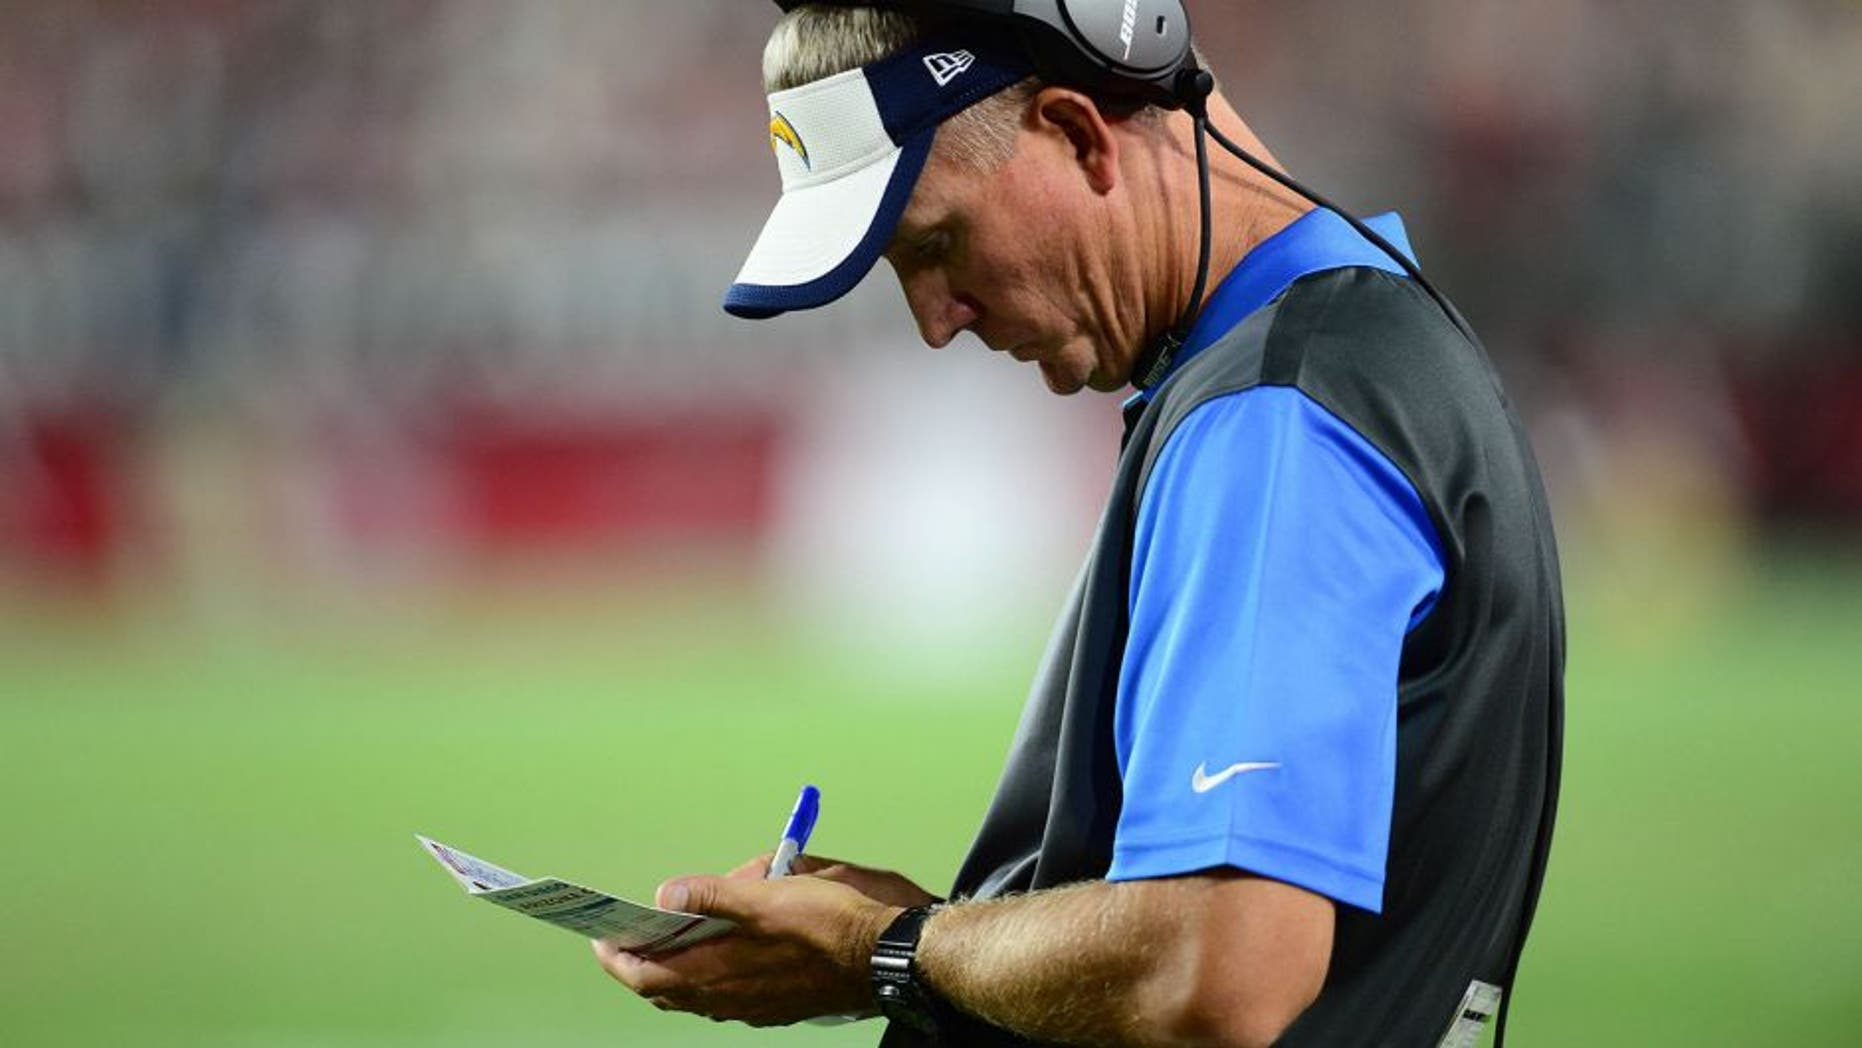 Aug 22, 2015; Glendale, AZ, USA; San Diego Chargers head coach Mike McCoy looks on against the Arizona Cardinals during the first half at University of Phoenix Stadium. The Chargers won 22-19. Mandatory Credit: Joe Camporeale-USA TODAY Sports